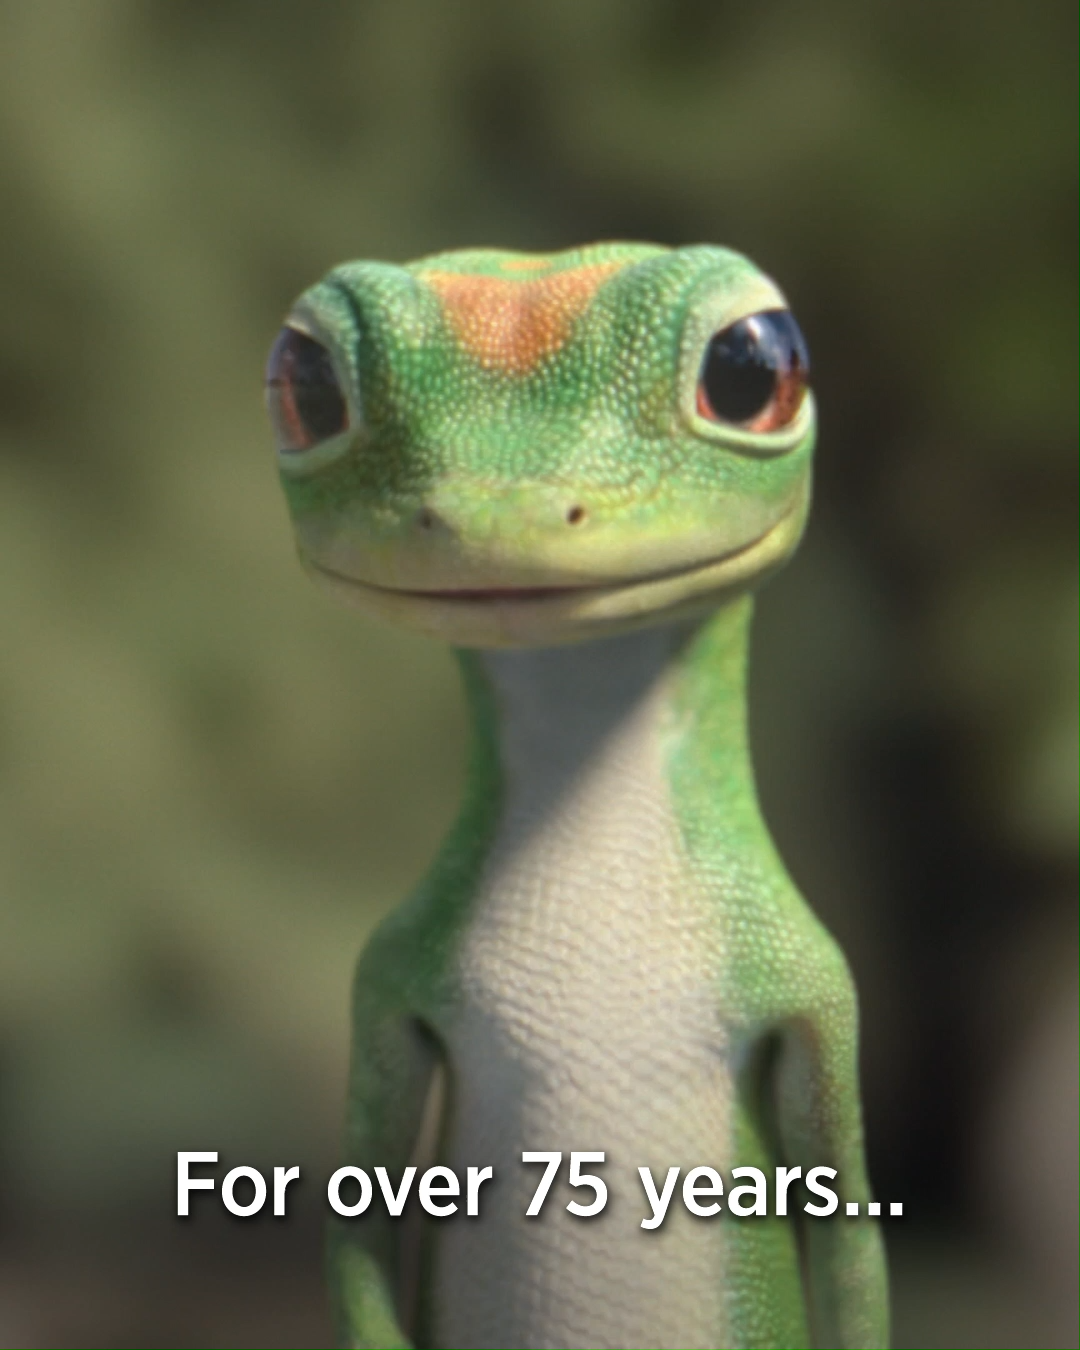 Geico Has Been Saving People Money For Over 75 Years Video In 2020 Military Humor Family Love Quotes Branding Design